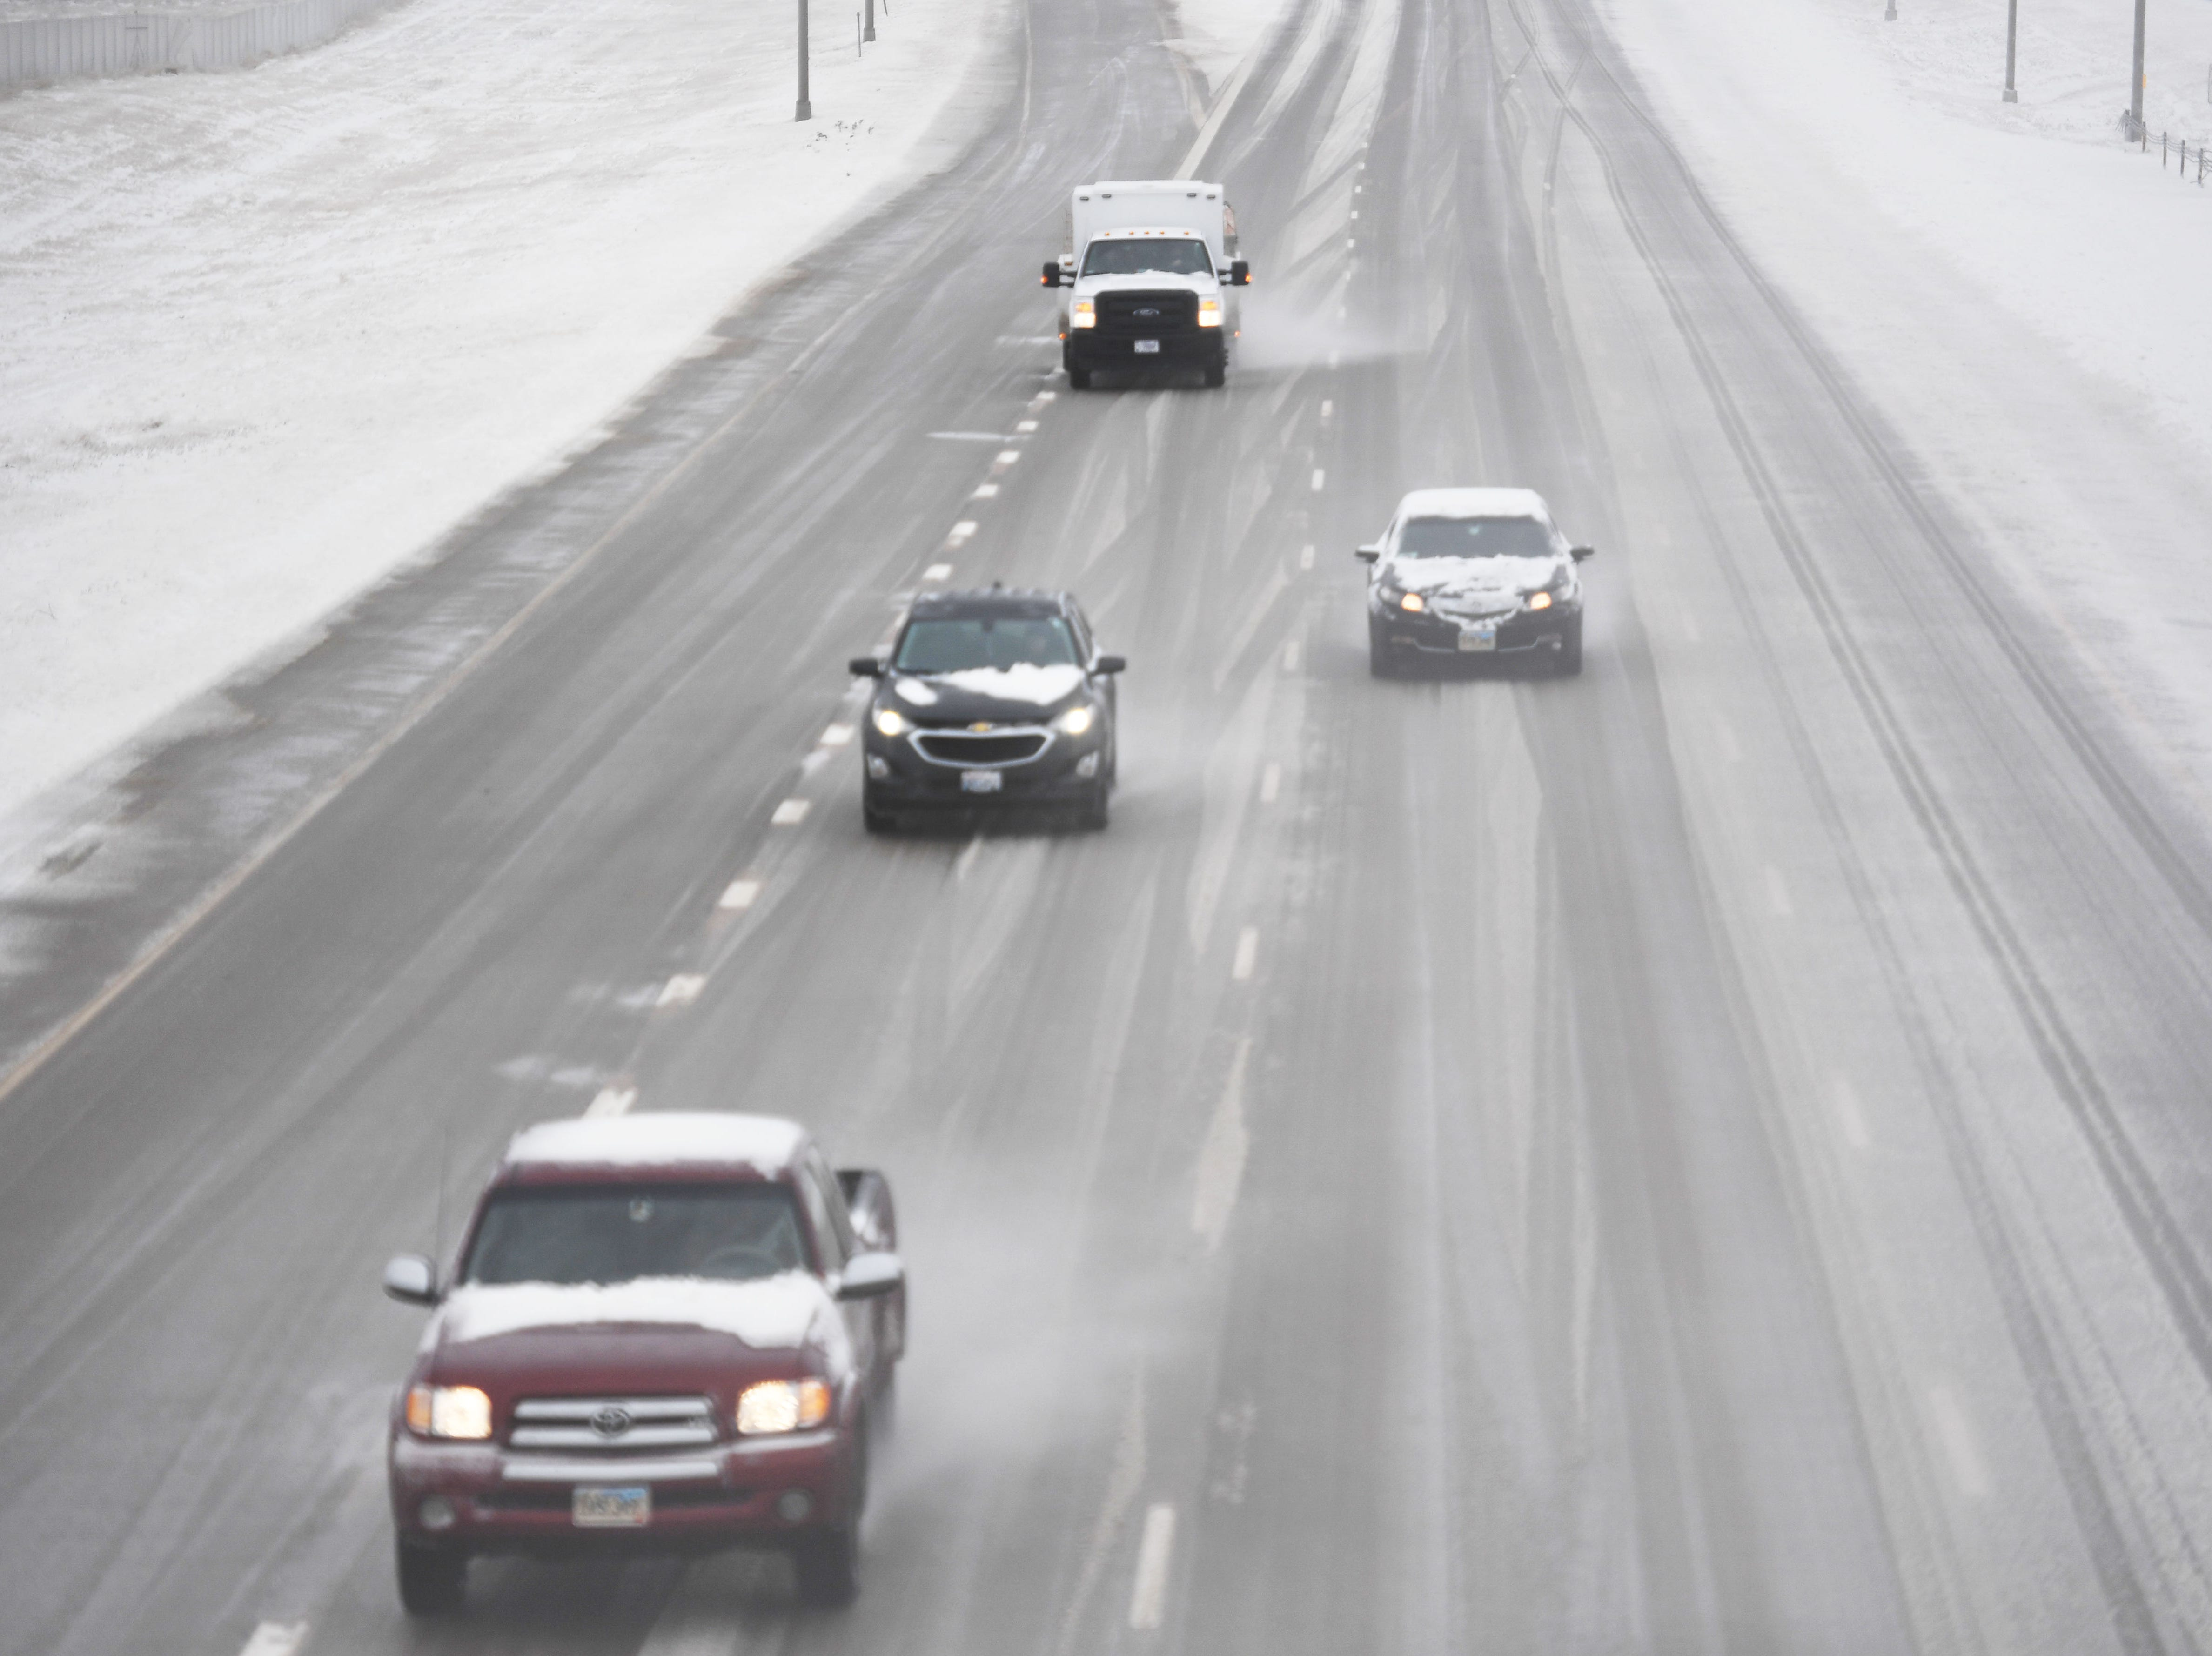 Cars travel on Interstate 29 Thursday, April 11, in Sioux Falls. I 29 is still closed from Sioux Falls to the North Dakota border, while Interstate 90 remains shuttered from Sioux Falls to New Underwood.